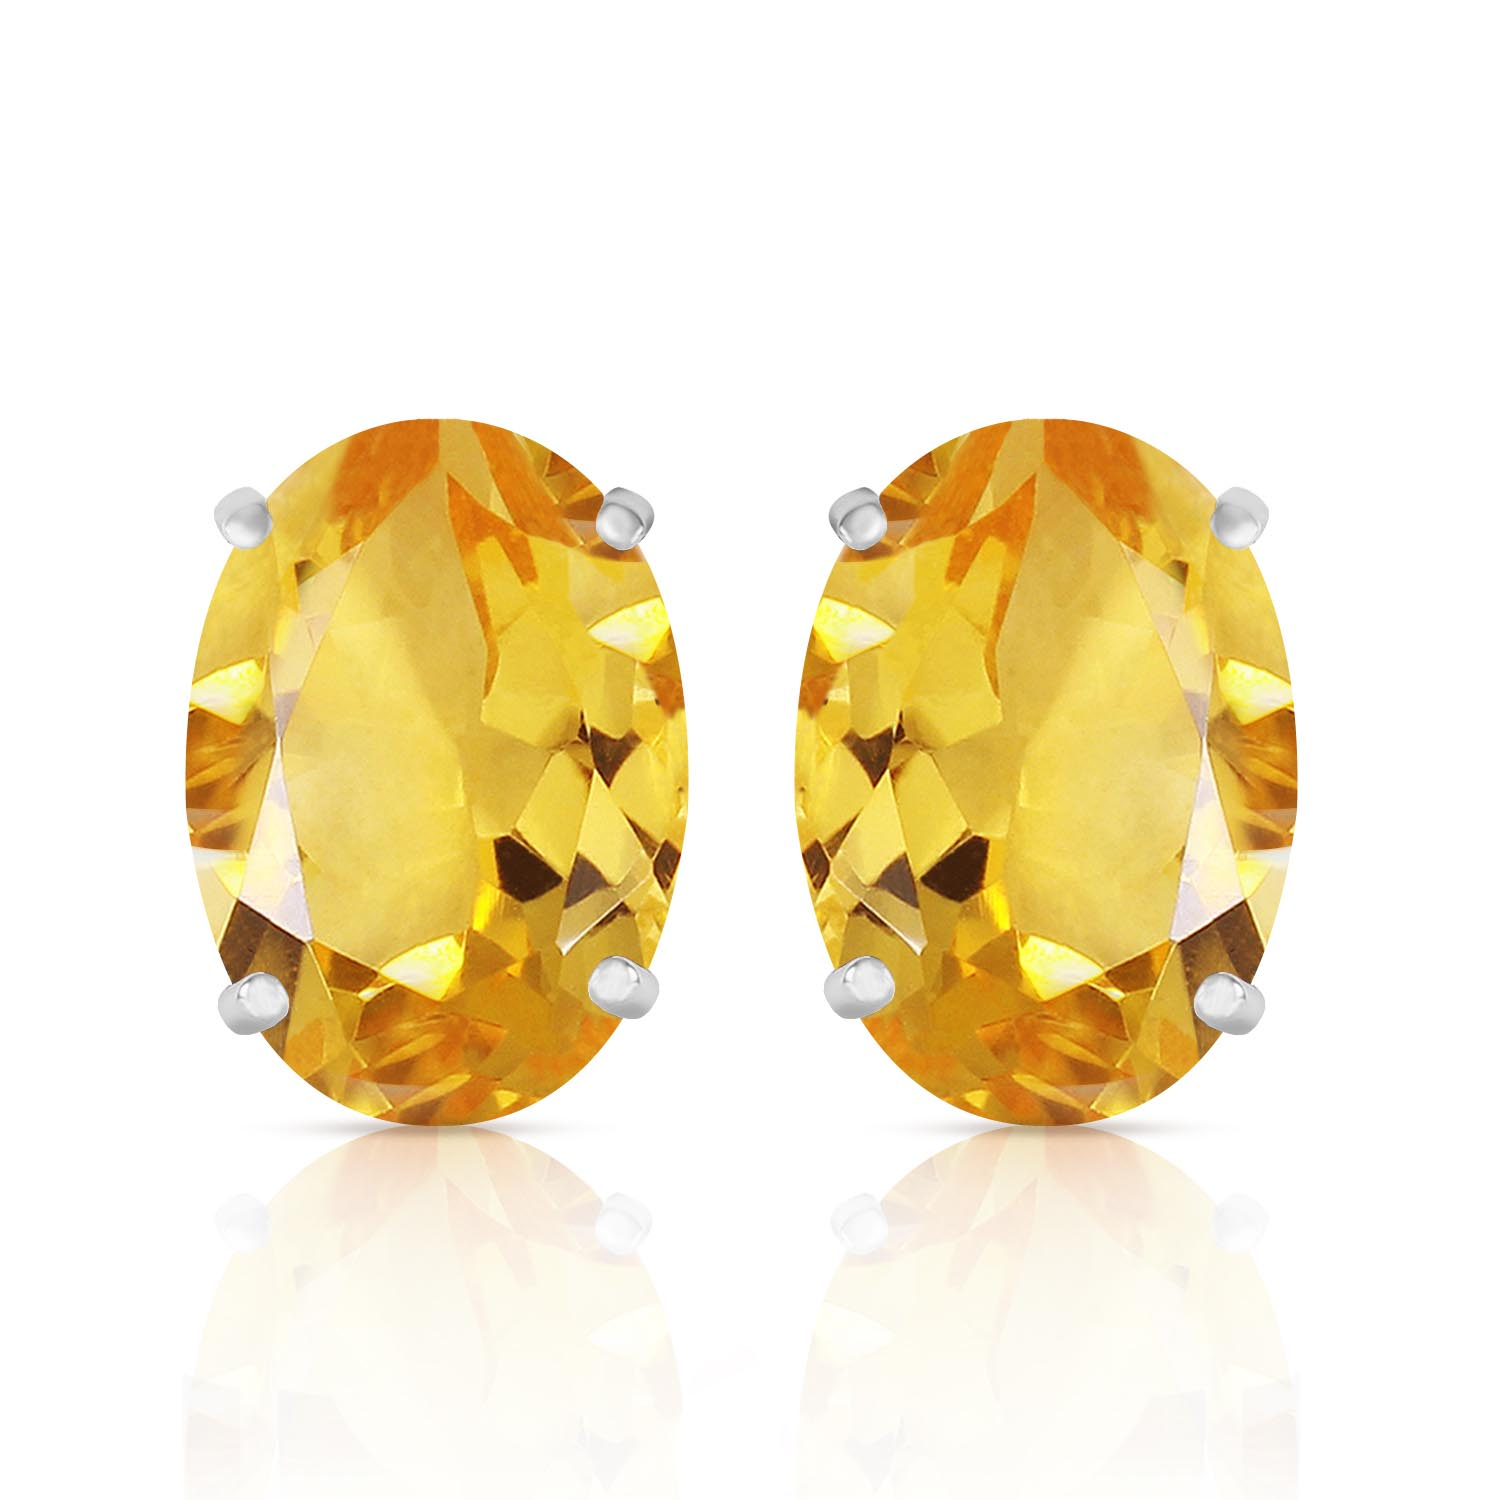 Citrine Stud Earrings 12.0ctw in 9ct White Gold